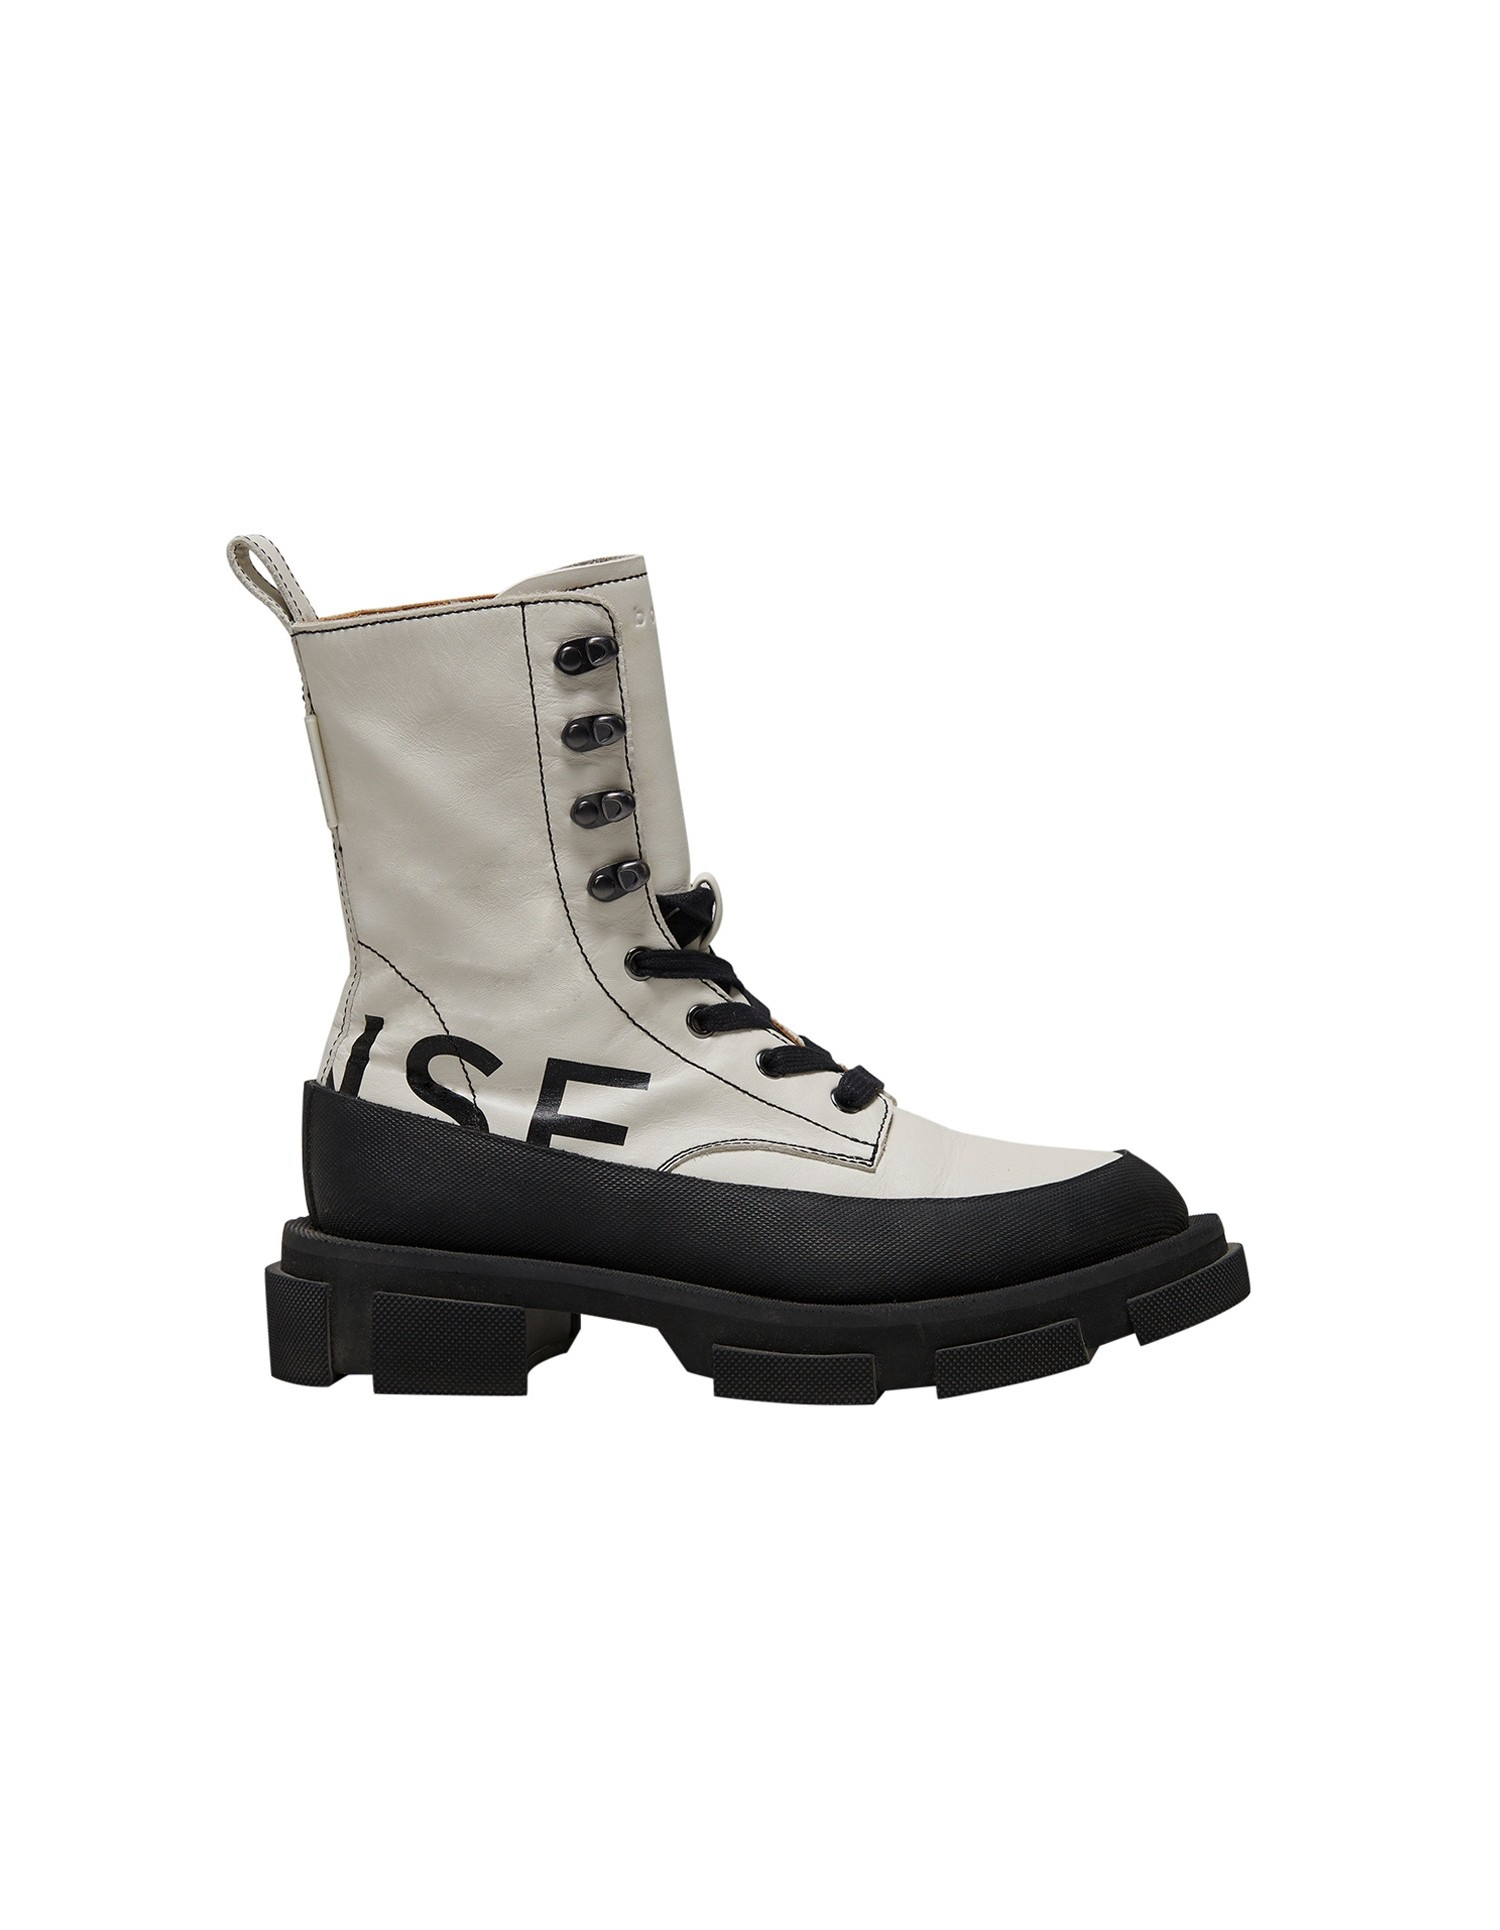 Both x MONSE Gao High Boots in White and Black Right Side View